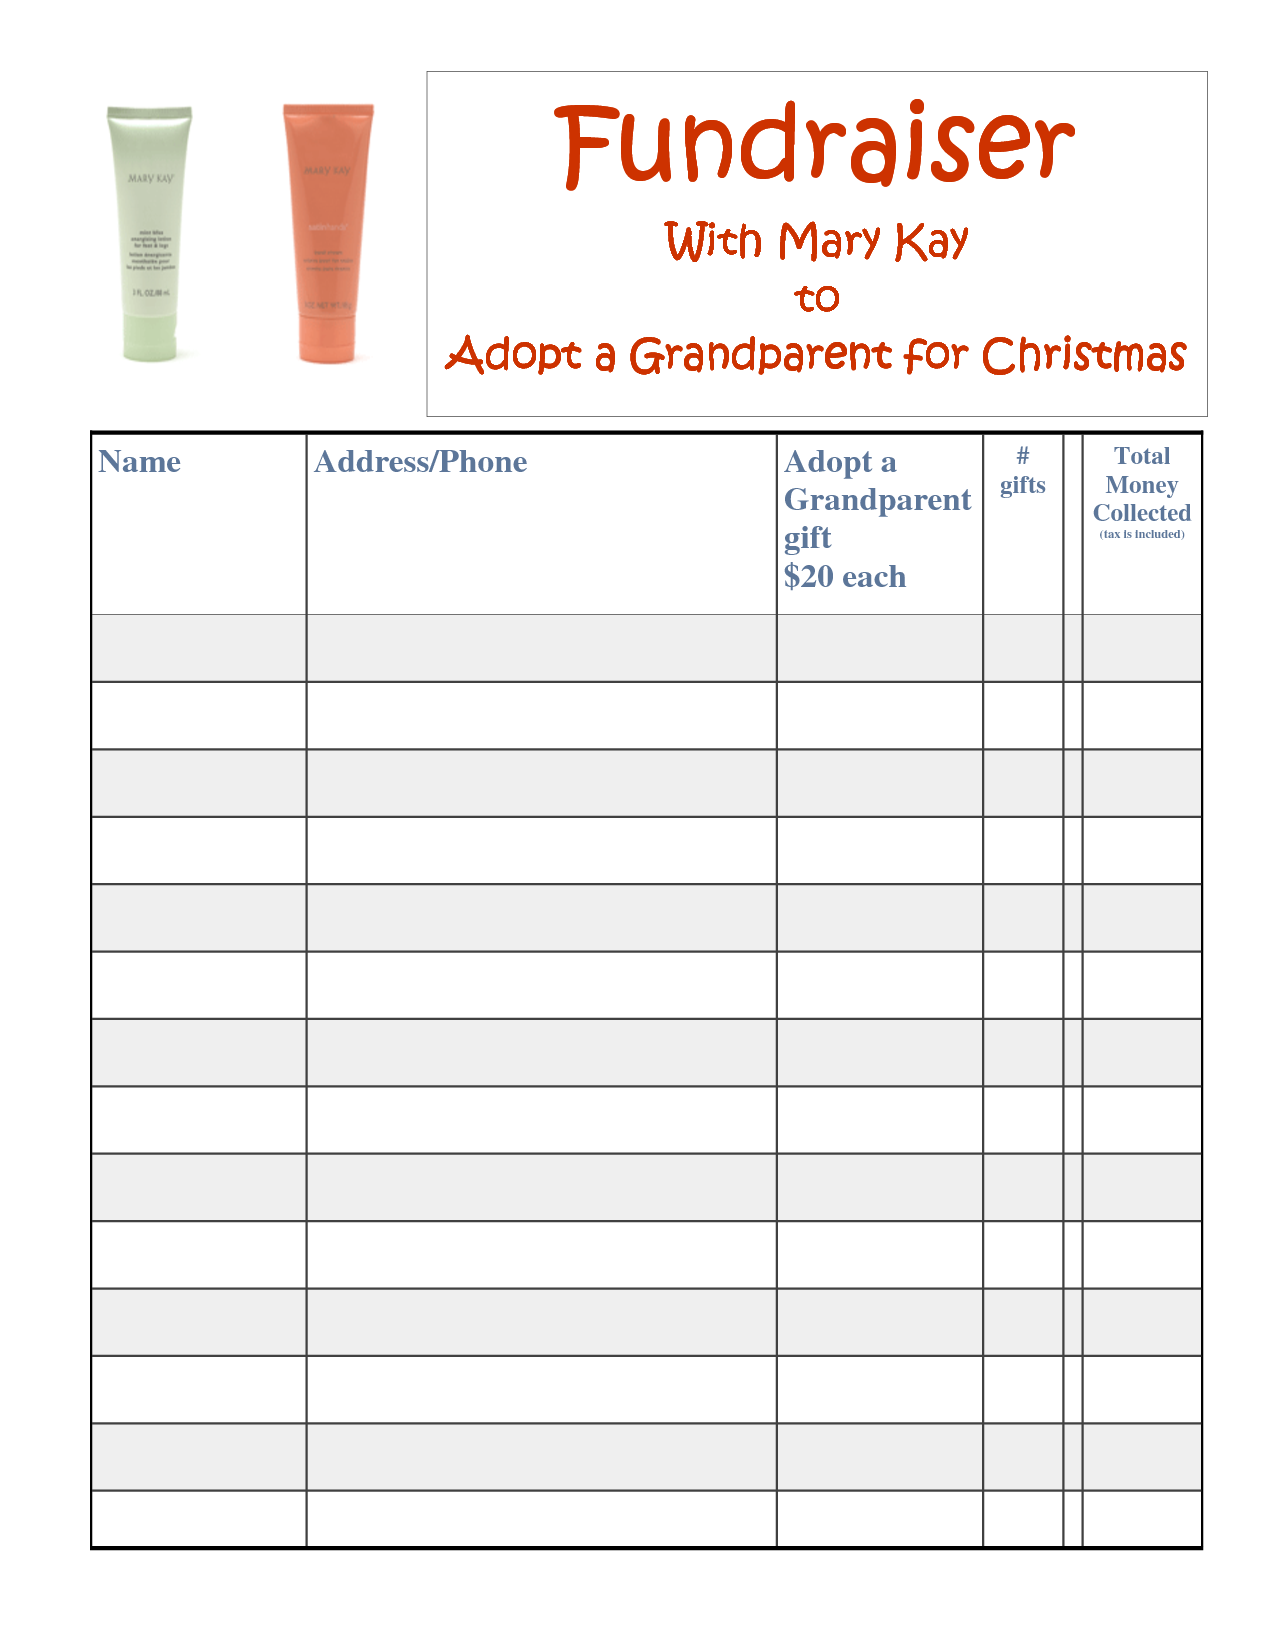 Mary Kay Satin Hands Fundraiser